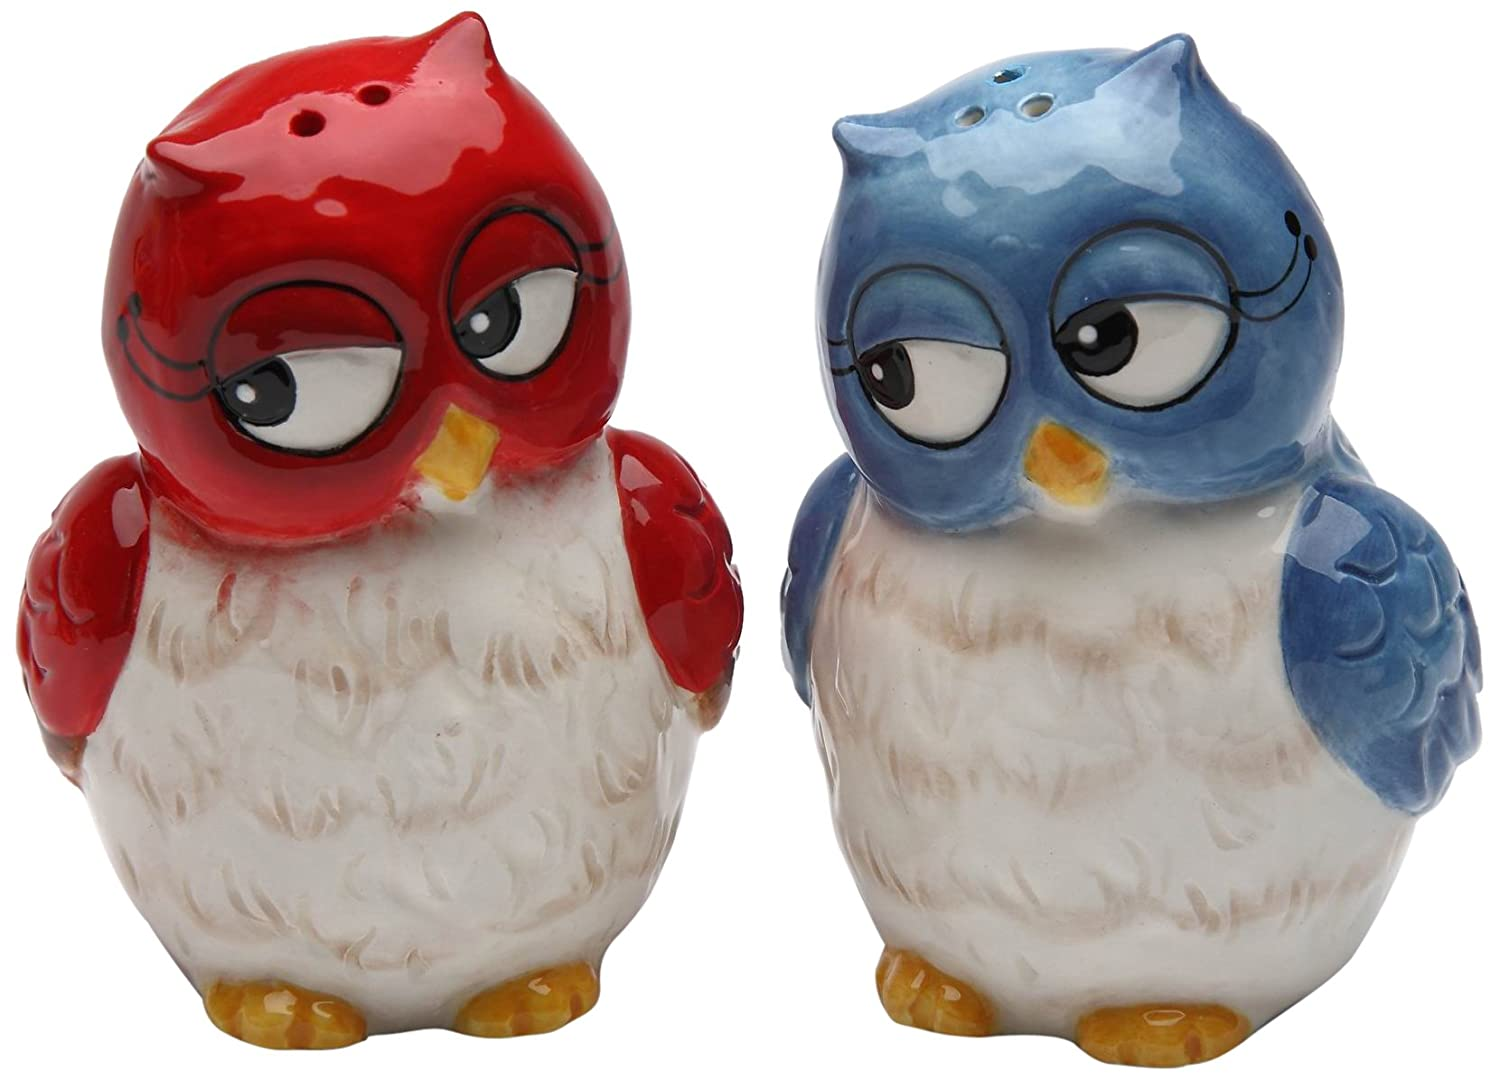 Cosmos Gifts 10907 Owl Couple Salt and Pepper Set, 3-Inch